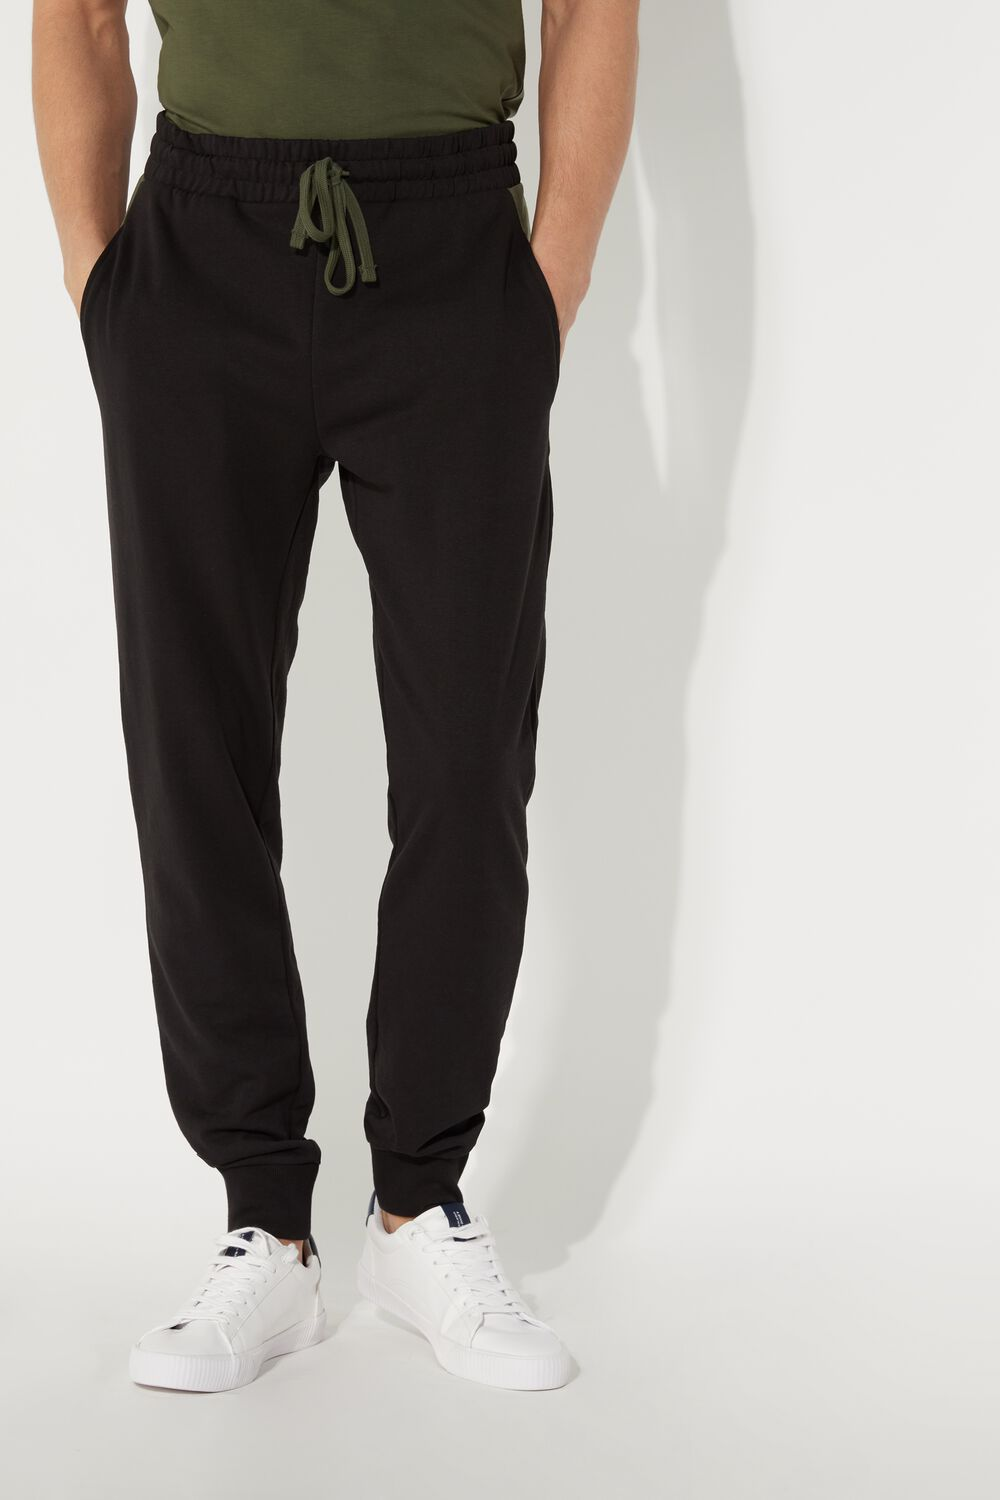 Long Pants in Fleece with Contrasting Side Panles